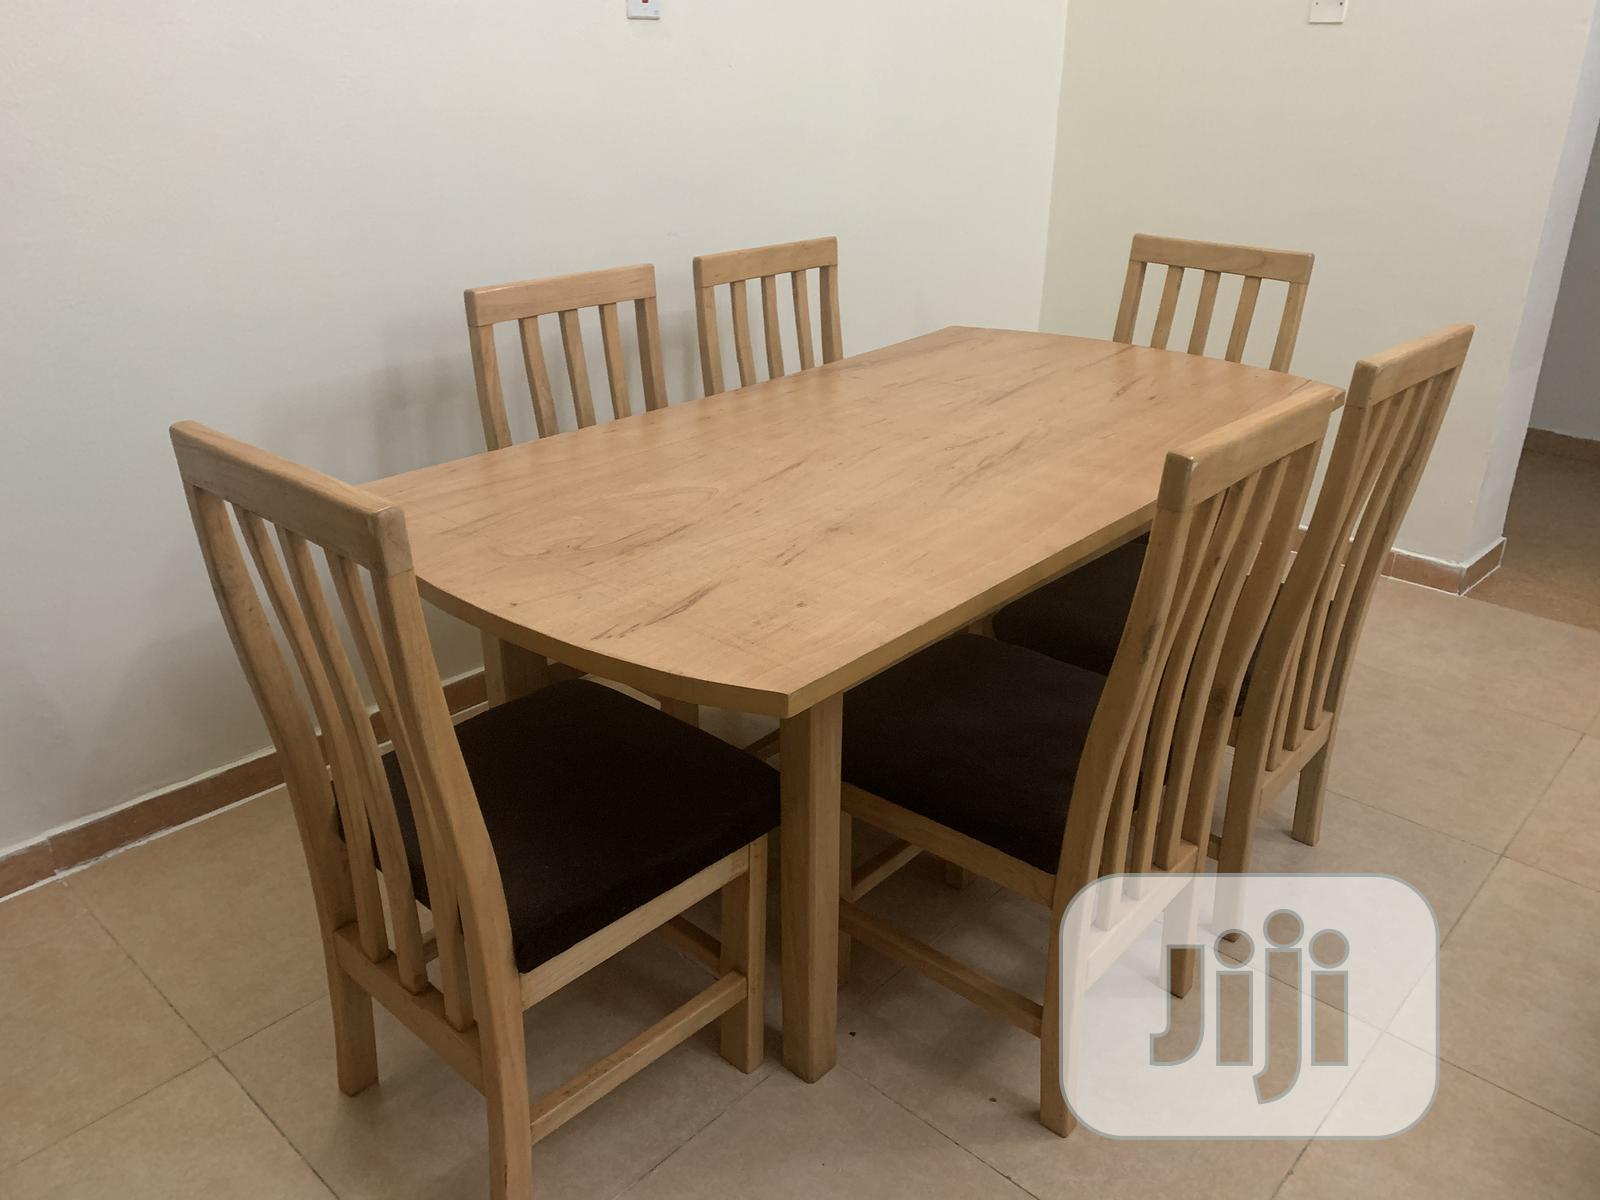 Turkish Dining Table With 6 Chairs